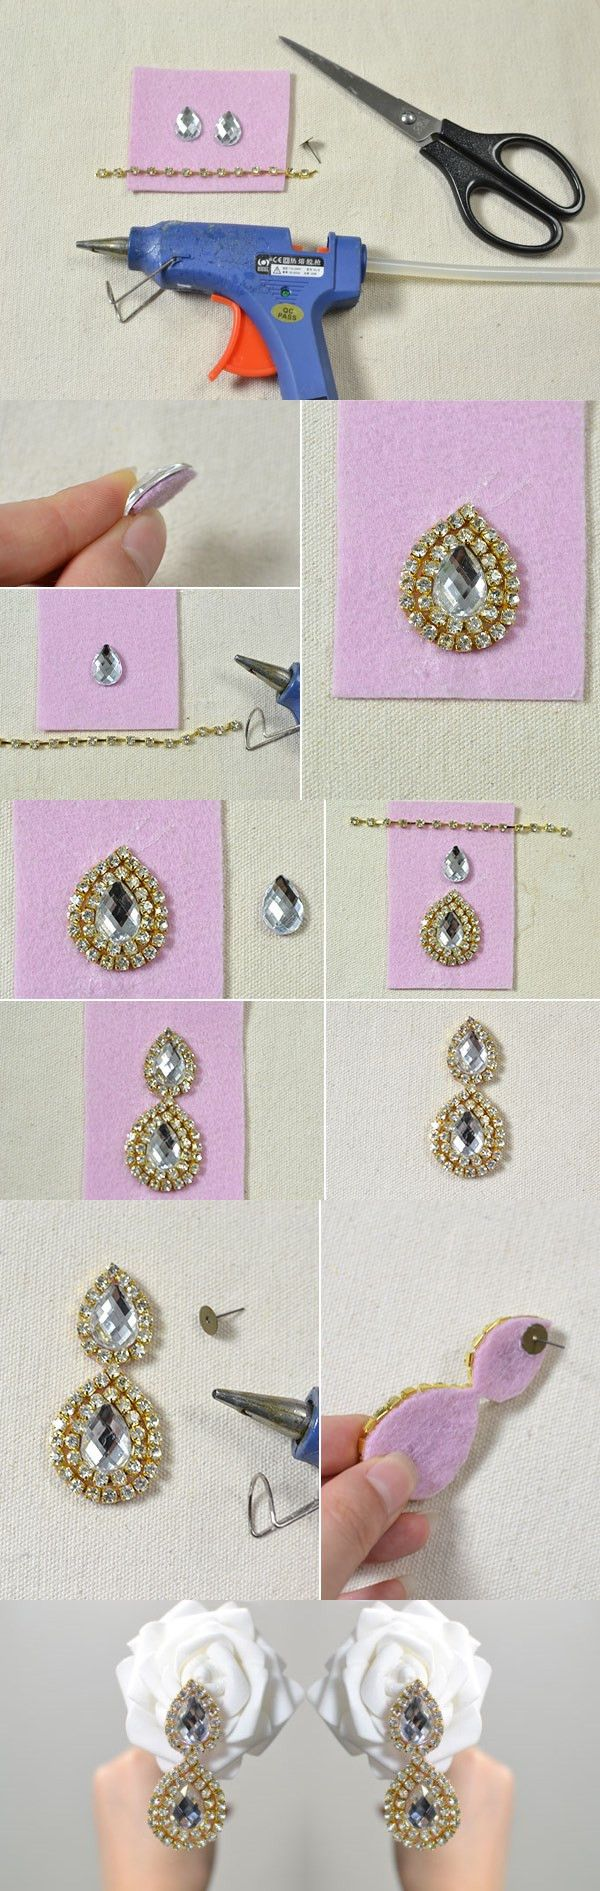 Tutorial On How To Make Drop Earrings With Rhinestone Beads From  Lcndahall